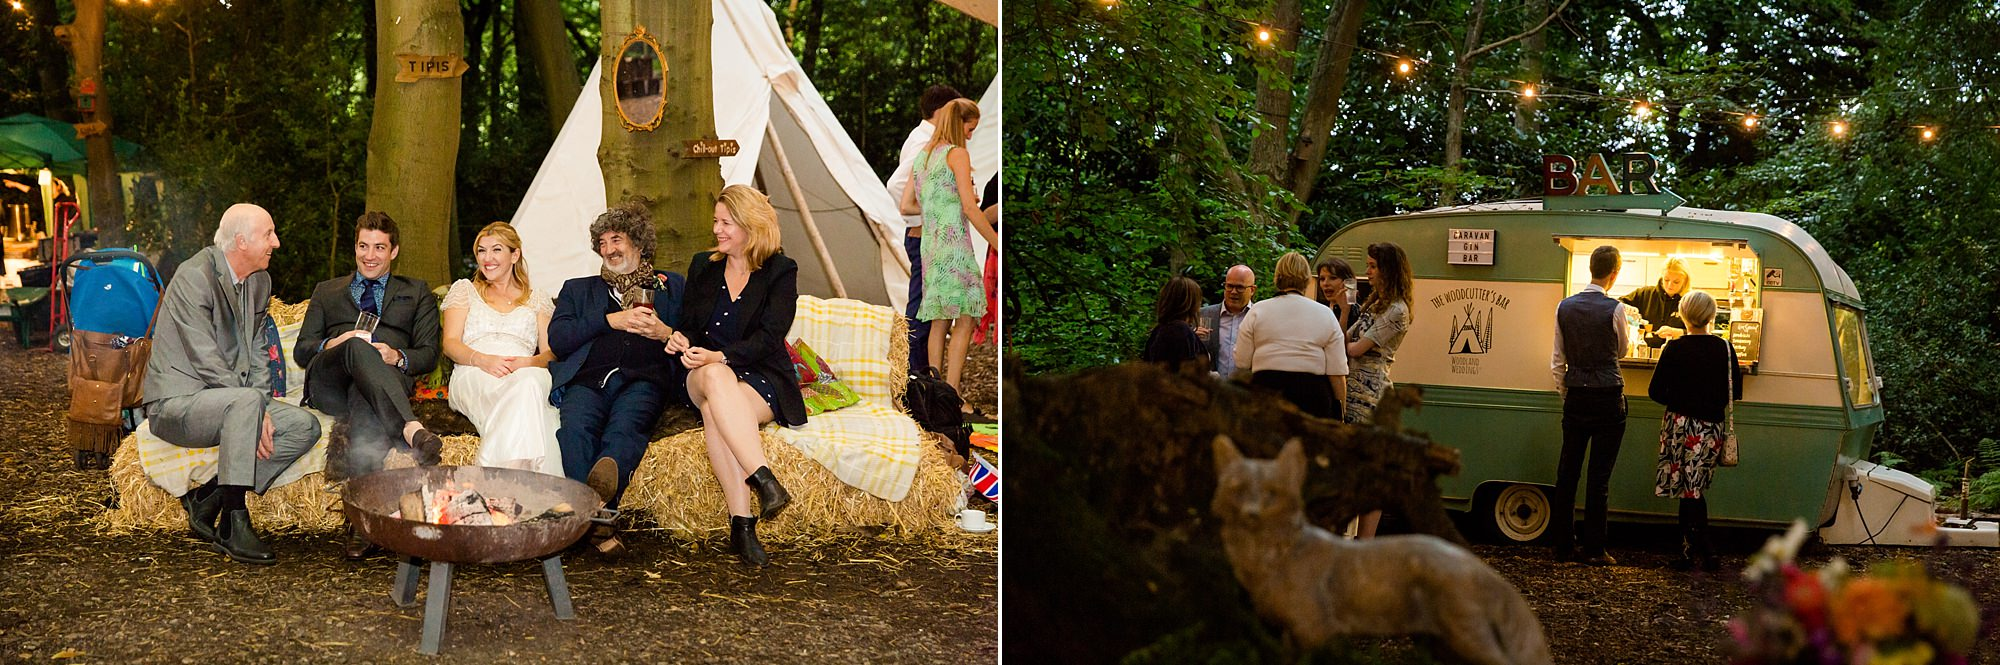 Woodland Weddings Tring evening guests